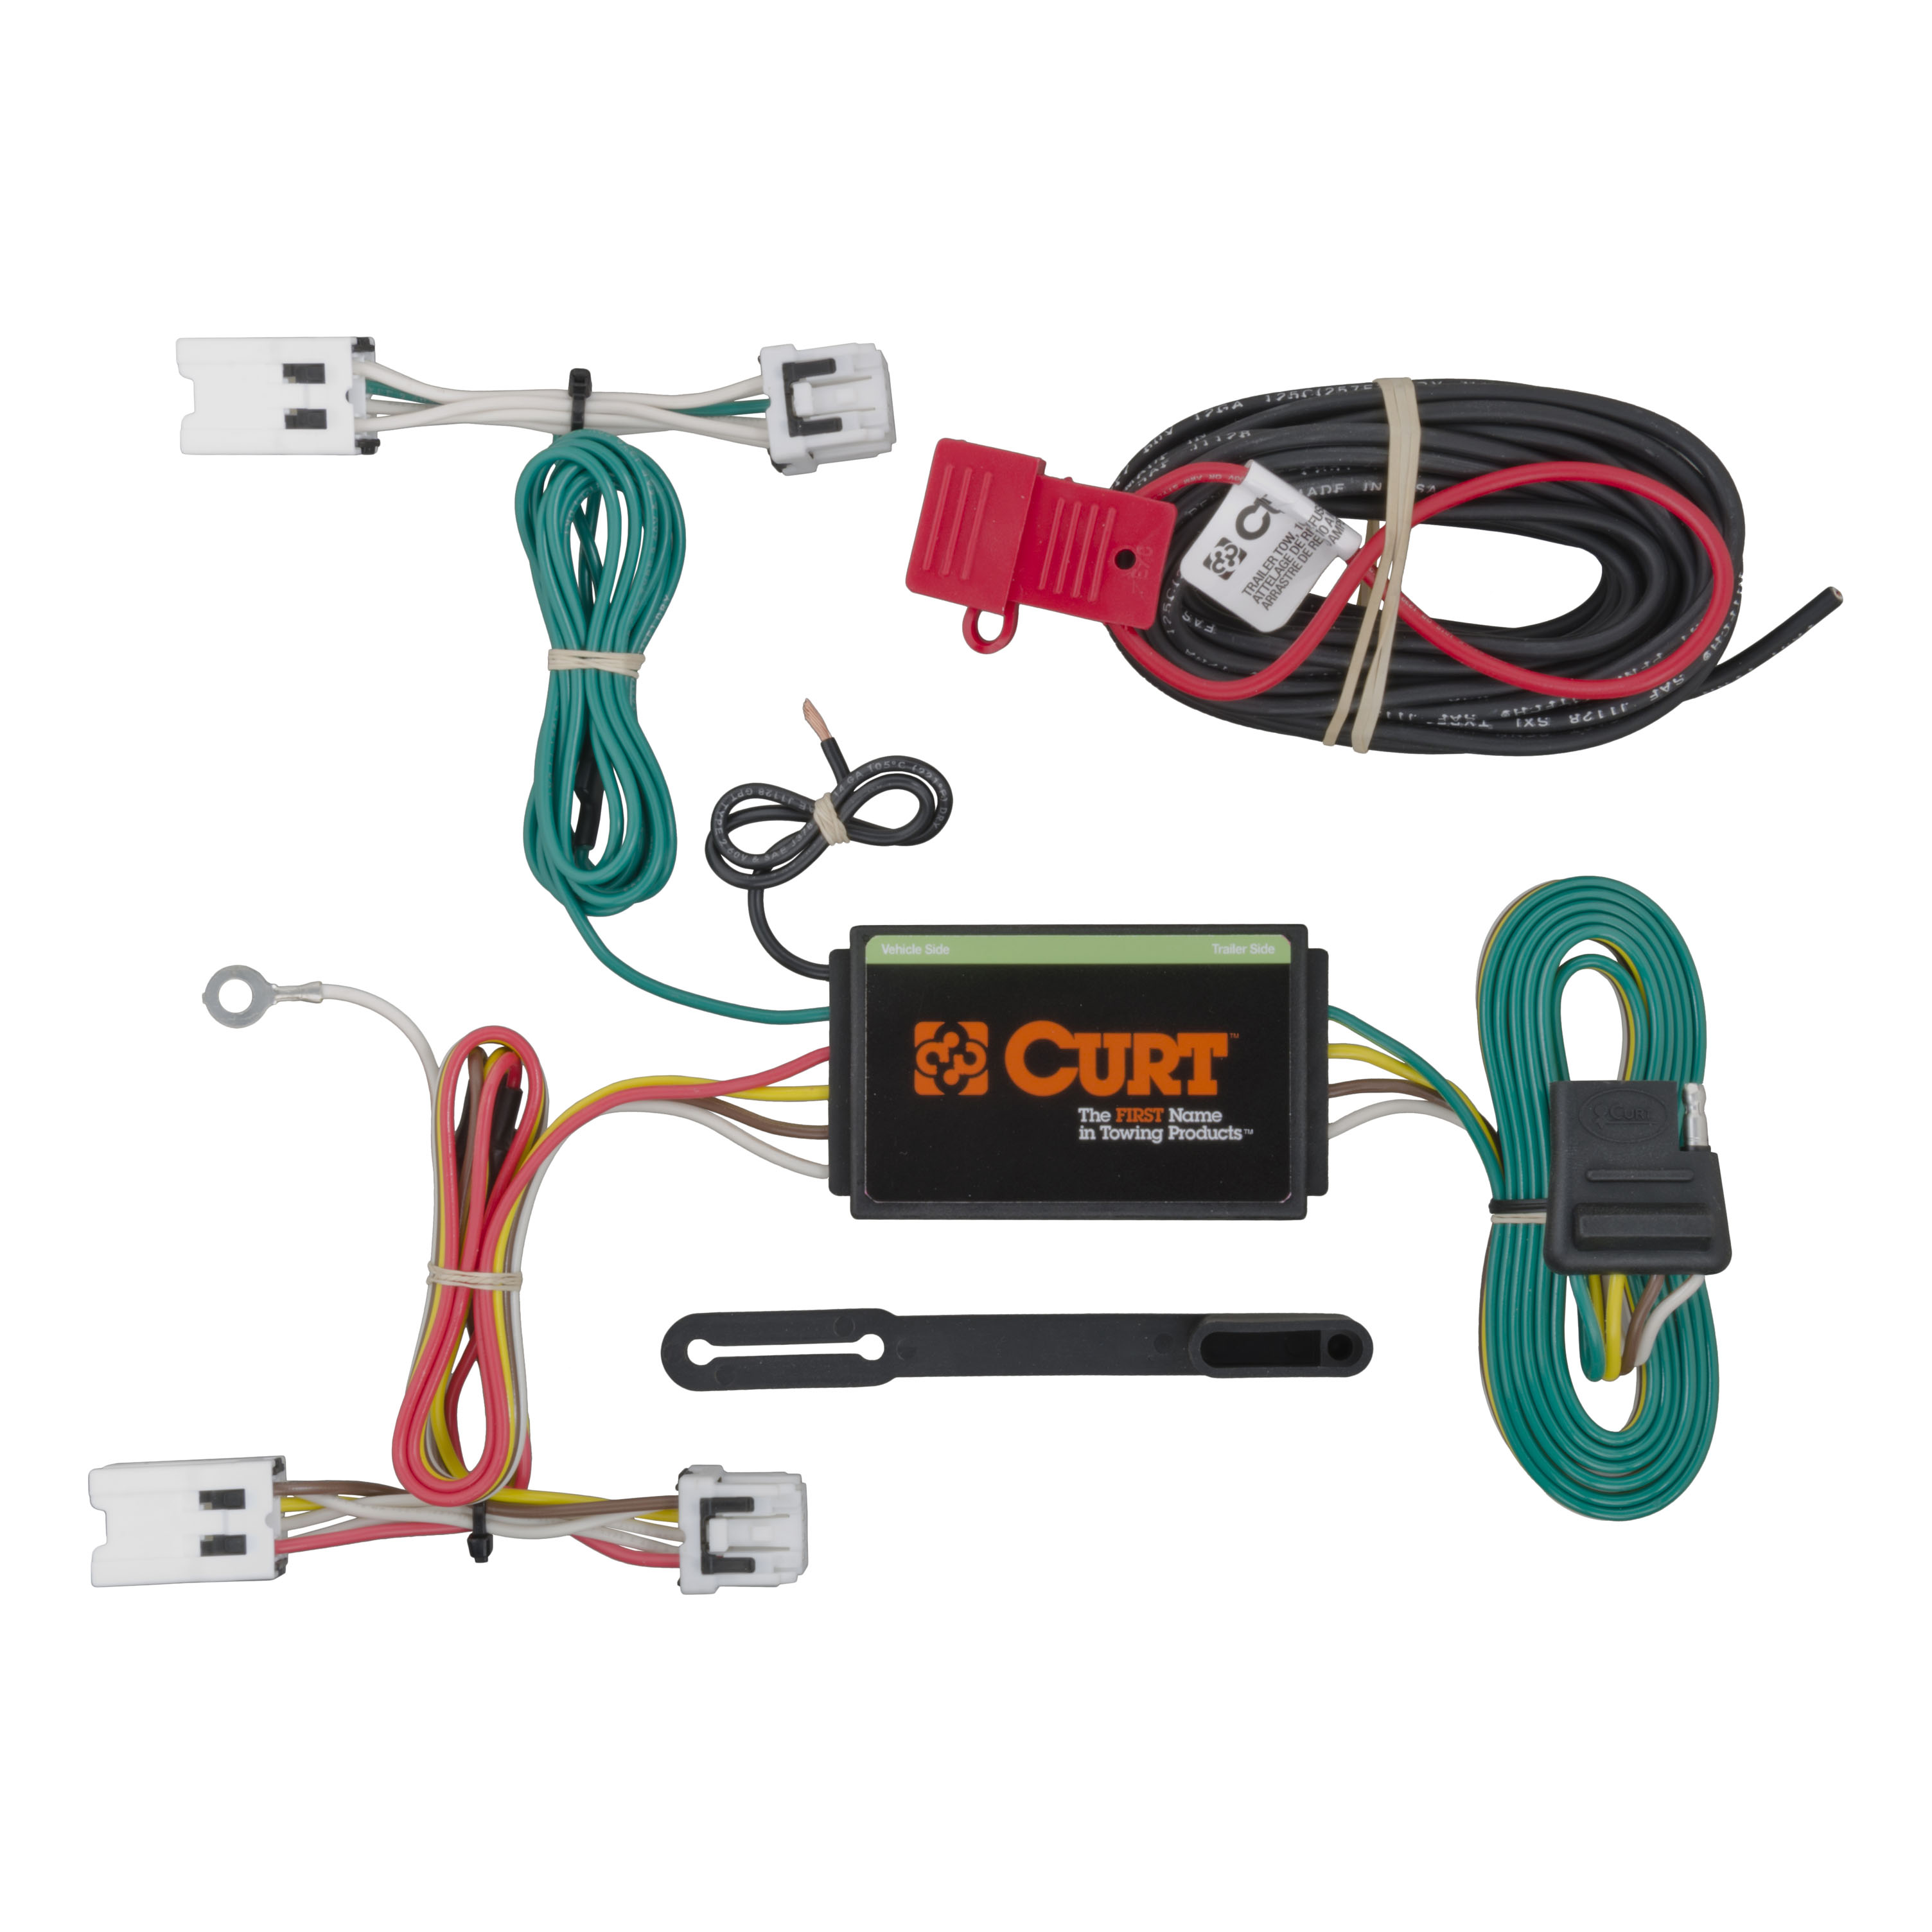 curt custom vehicle to trailer wiring harness 56205 for 2013 2016 1997 nissan radio wiring harness image is loading curt custom vehicle to trailer wiring harness 56205